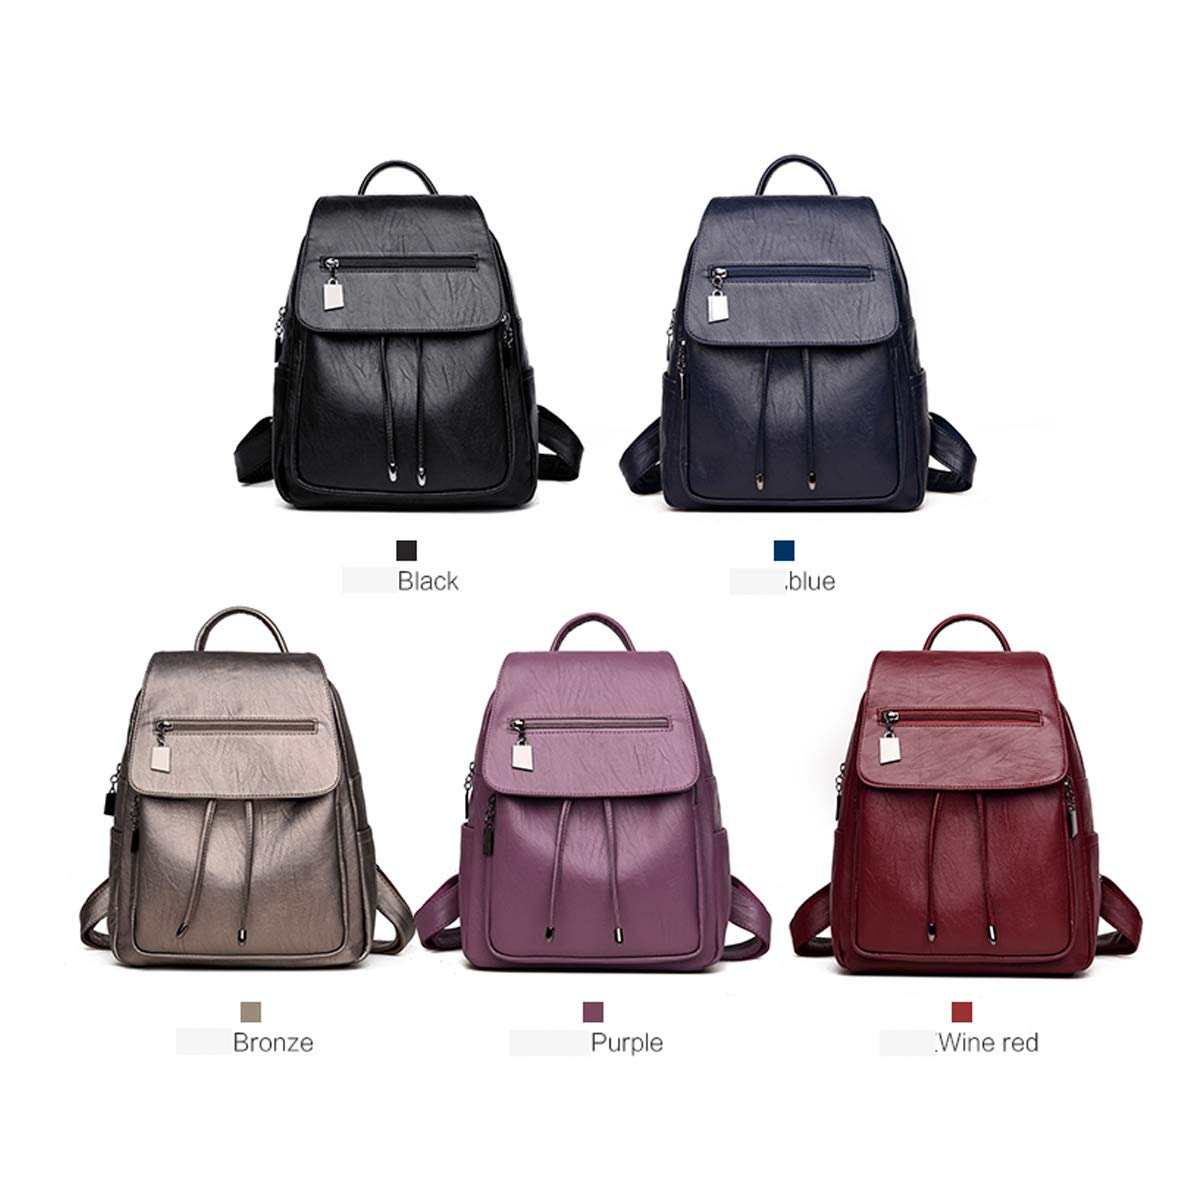 PU Leather ZHICHUANG Girls Multipurpose Backpack for Daily Travel//Outdoor//Travel//School//Work//Fashion//Leisure Retro and Generous for Women /& Men Five Colors